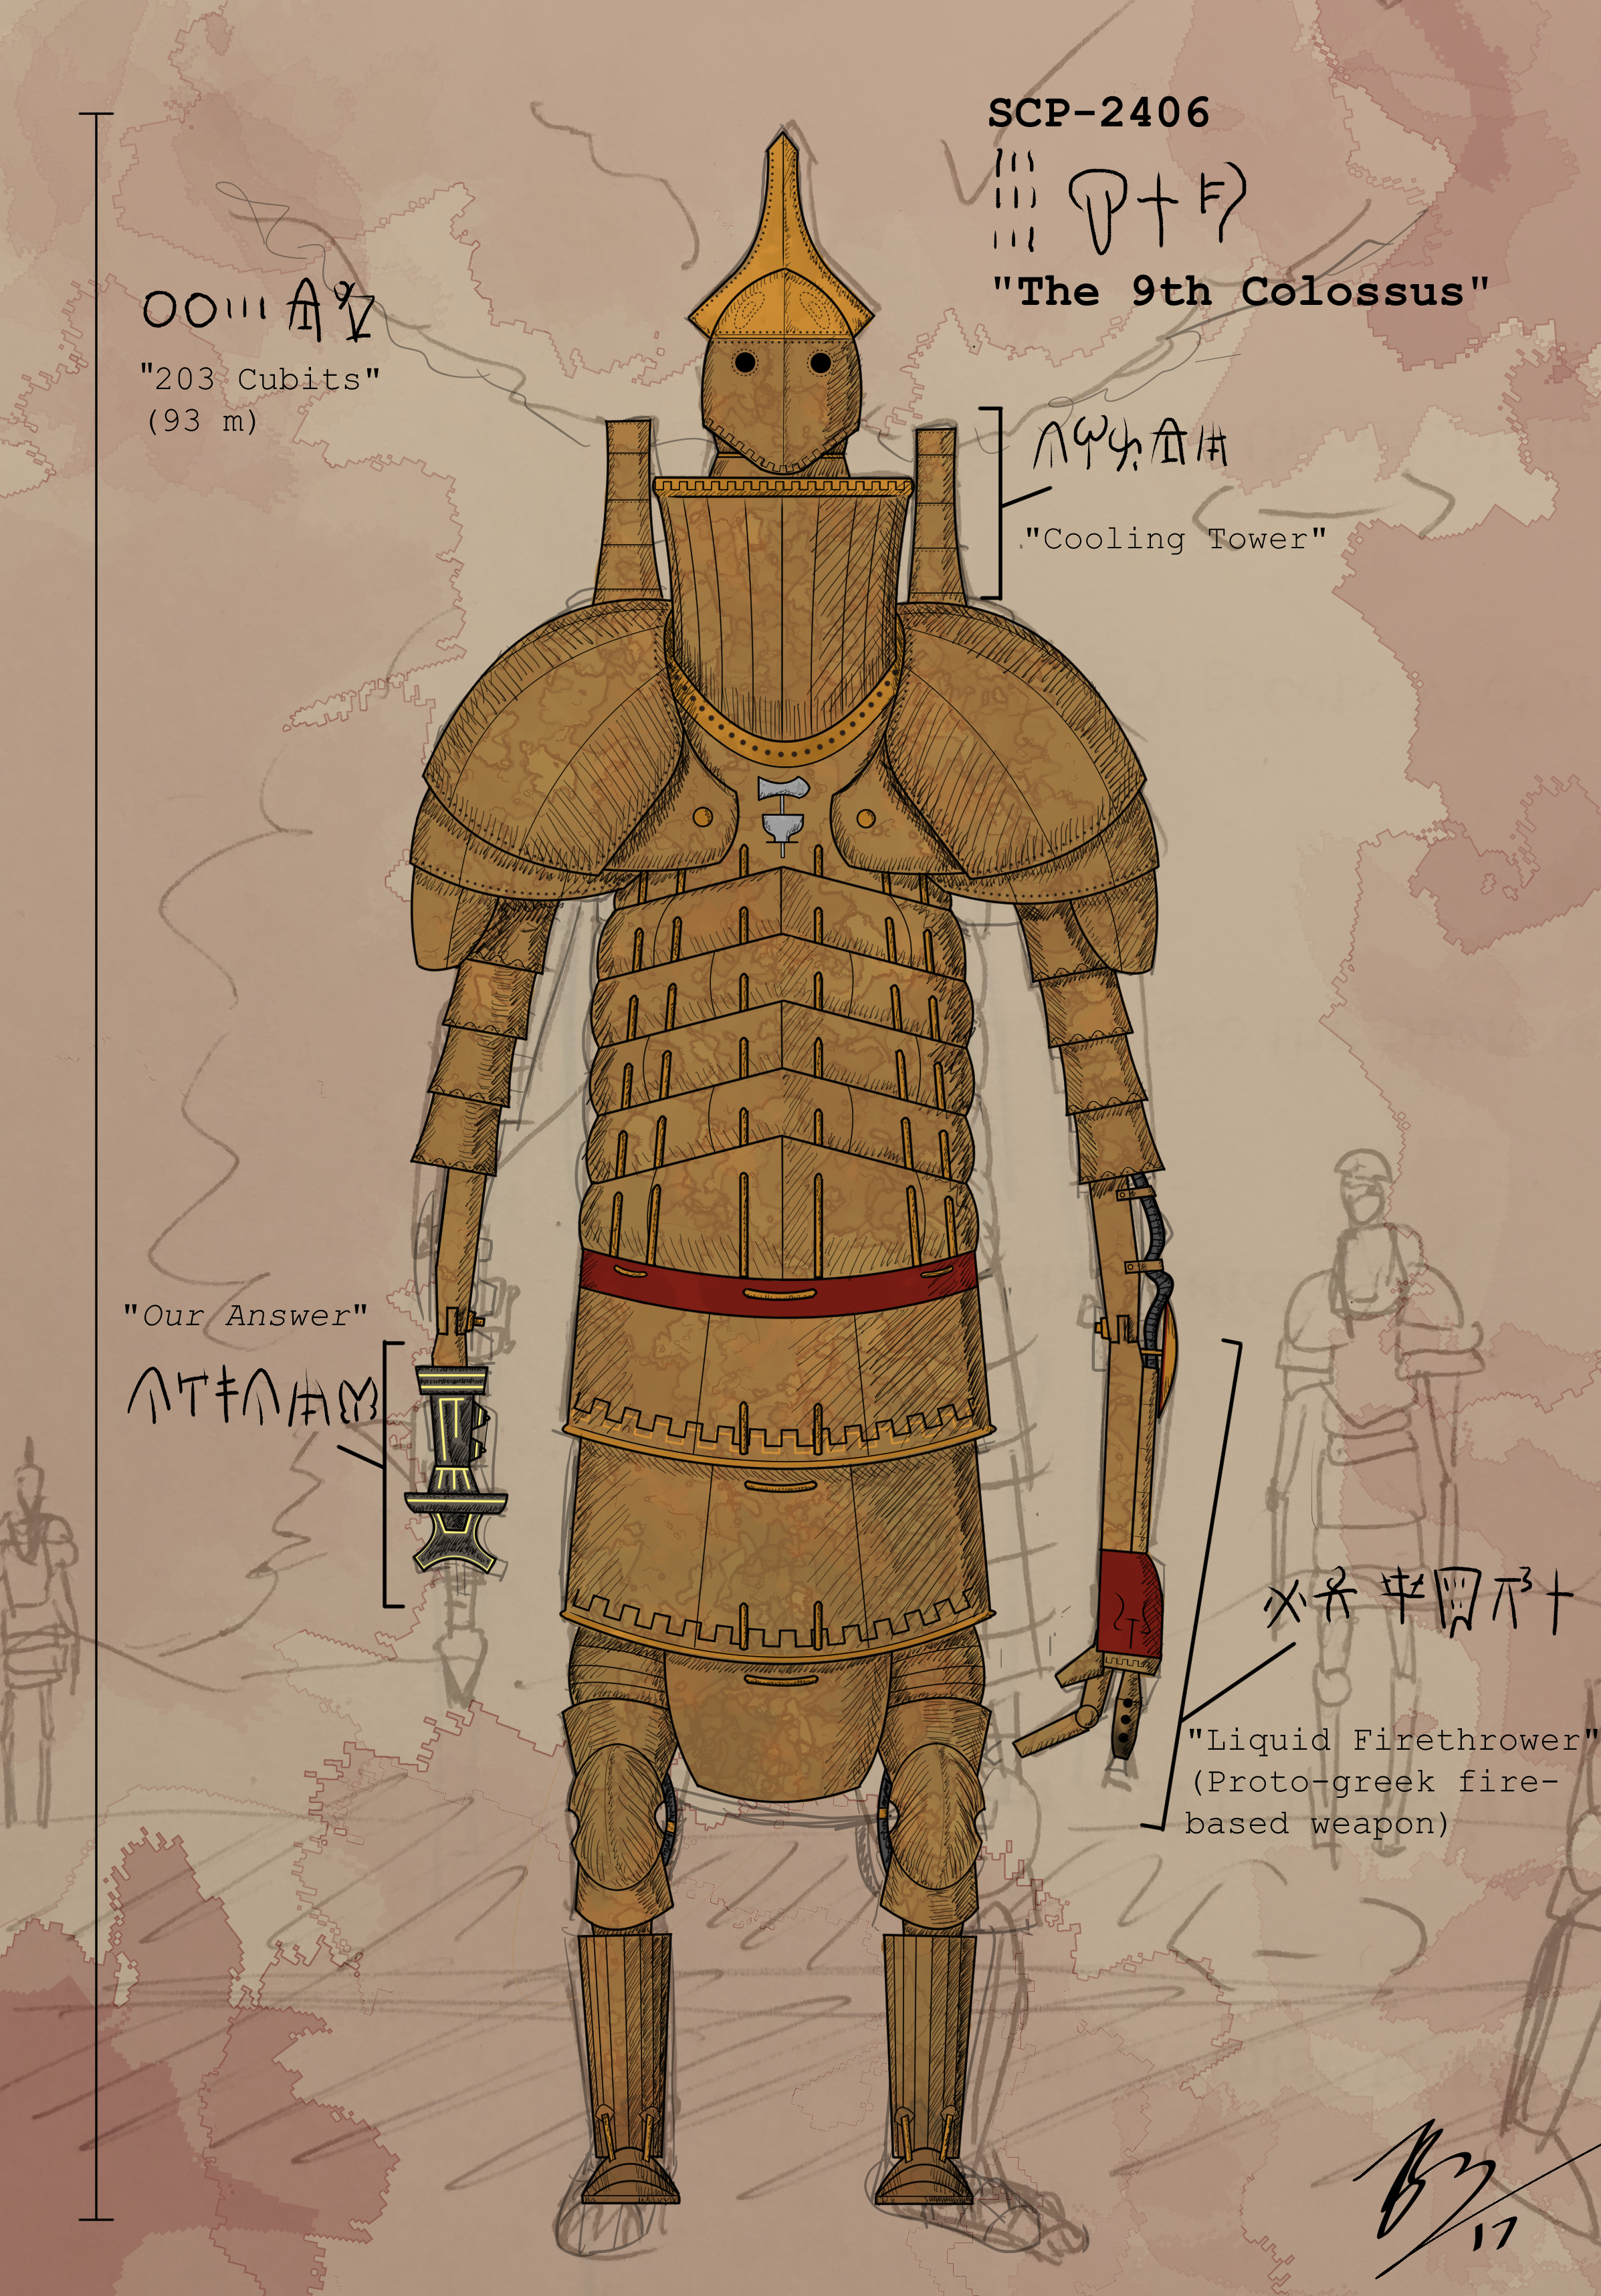 The 9th Colossus, SCP-2406